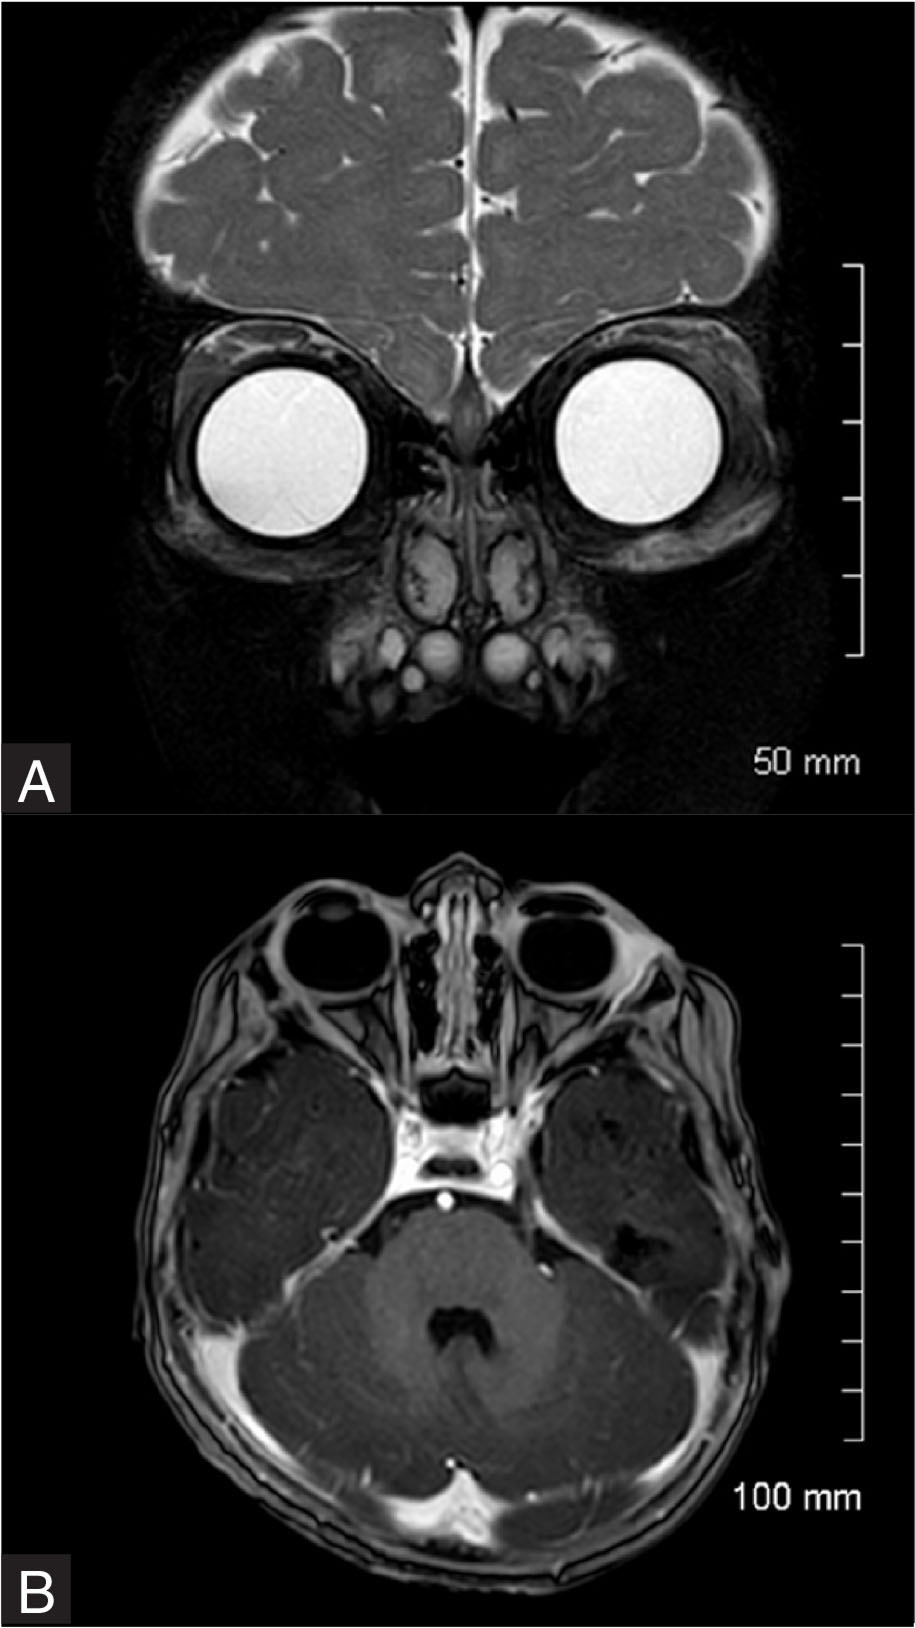 Magnetic resonance imaging. (A) Coronal view after chemotherapy induction cycle A. (B) Axial view after chemotherapy induction cycle A.